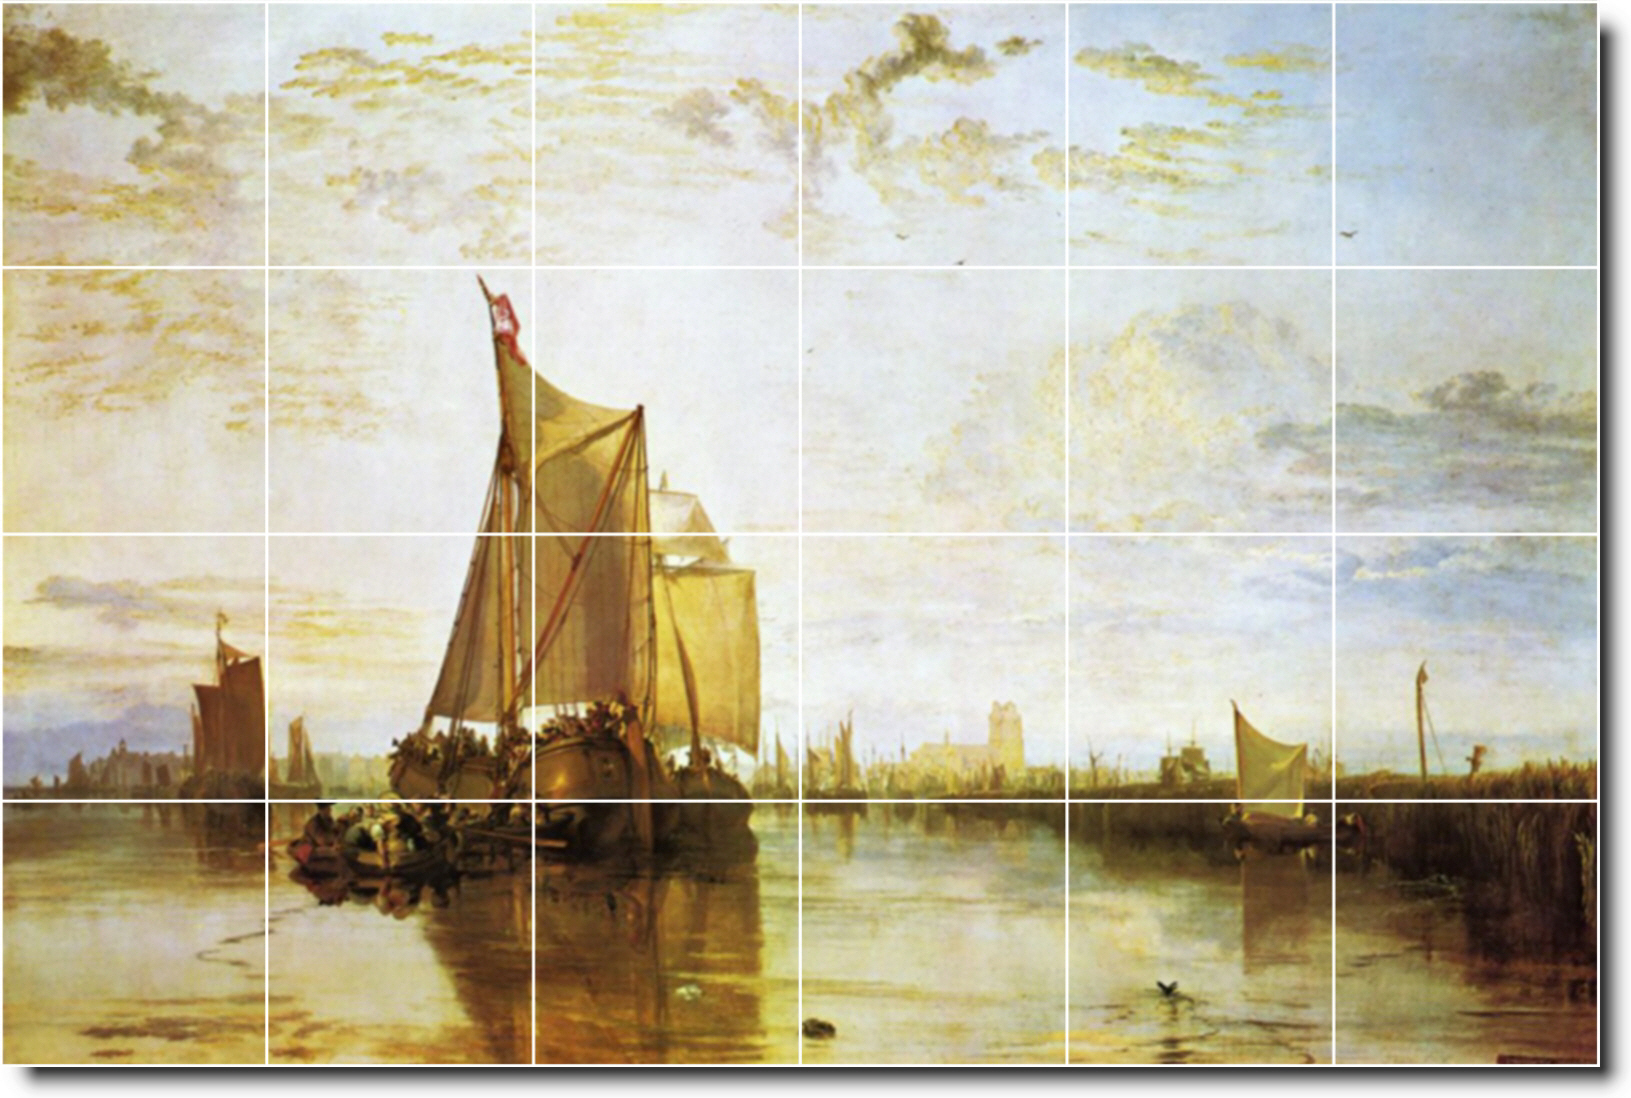 Dort The Dort Packet Boat From Rotterdam Bacalmed Tile Mural. Joseph Turner. Ships Painting Tile Mural. Our company produces custom backsplash tile murals